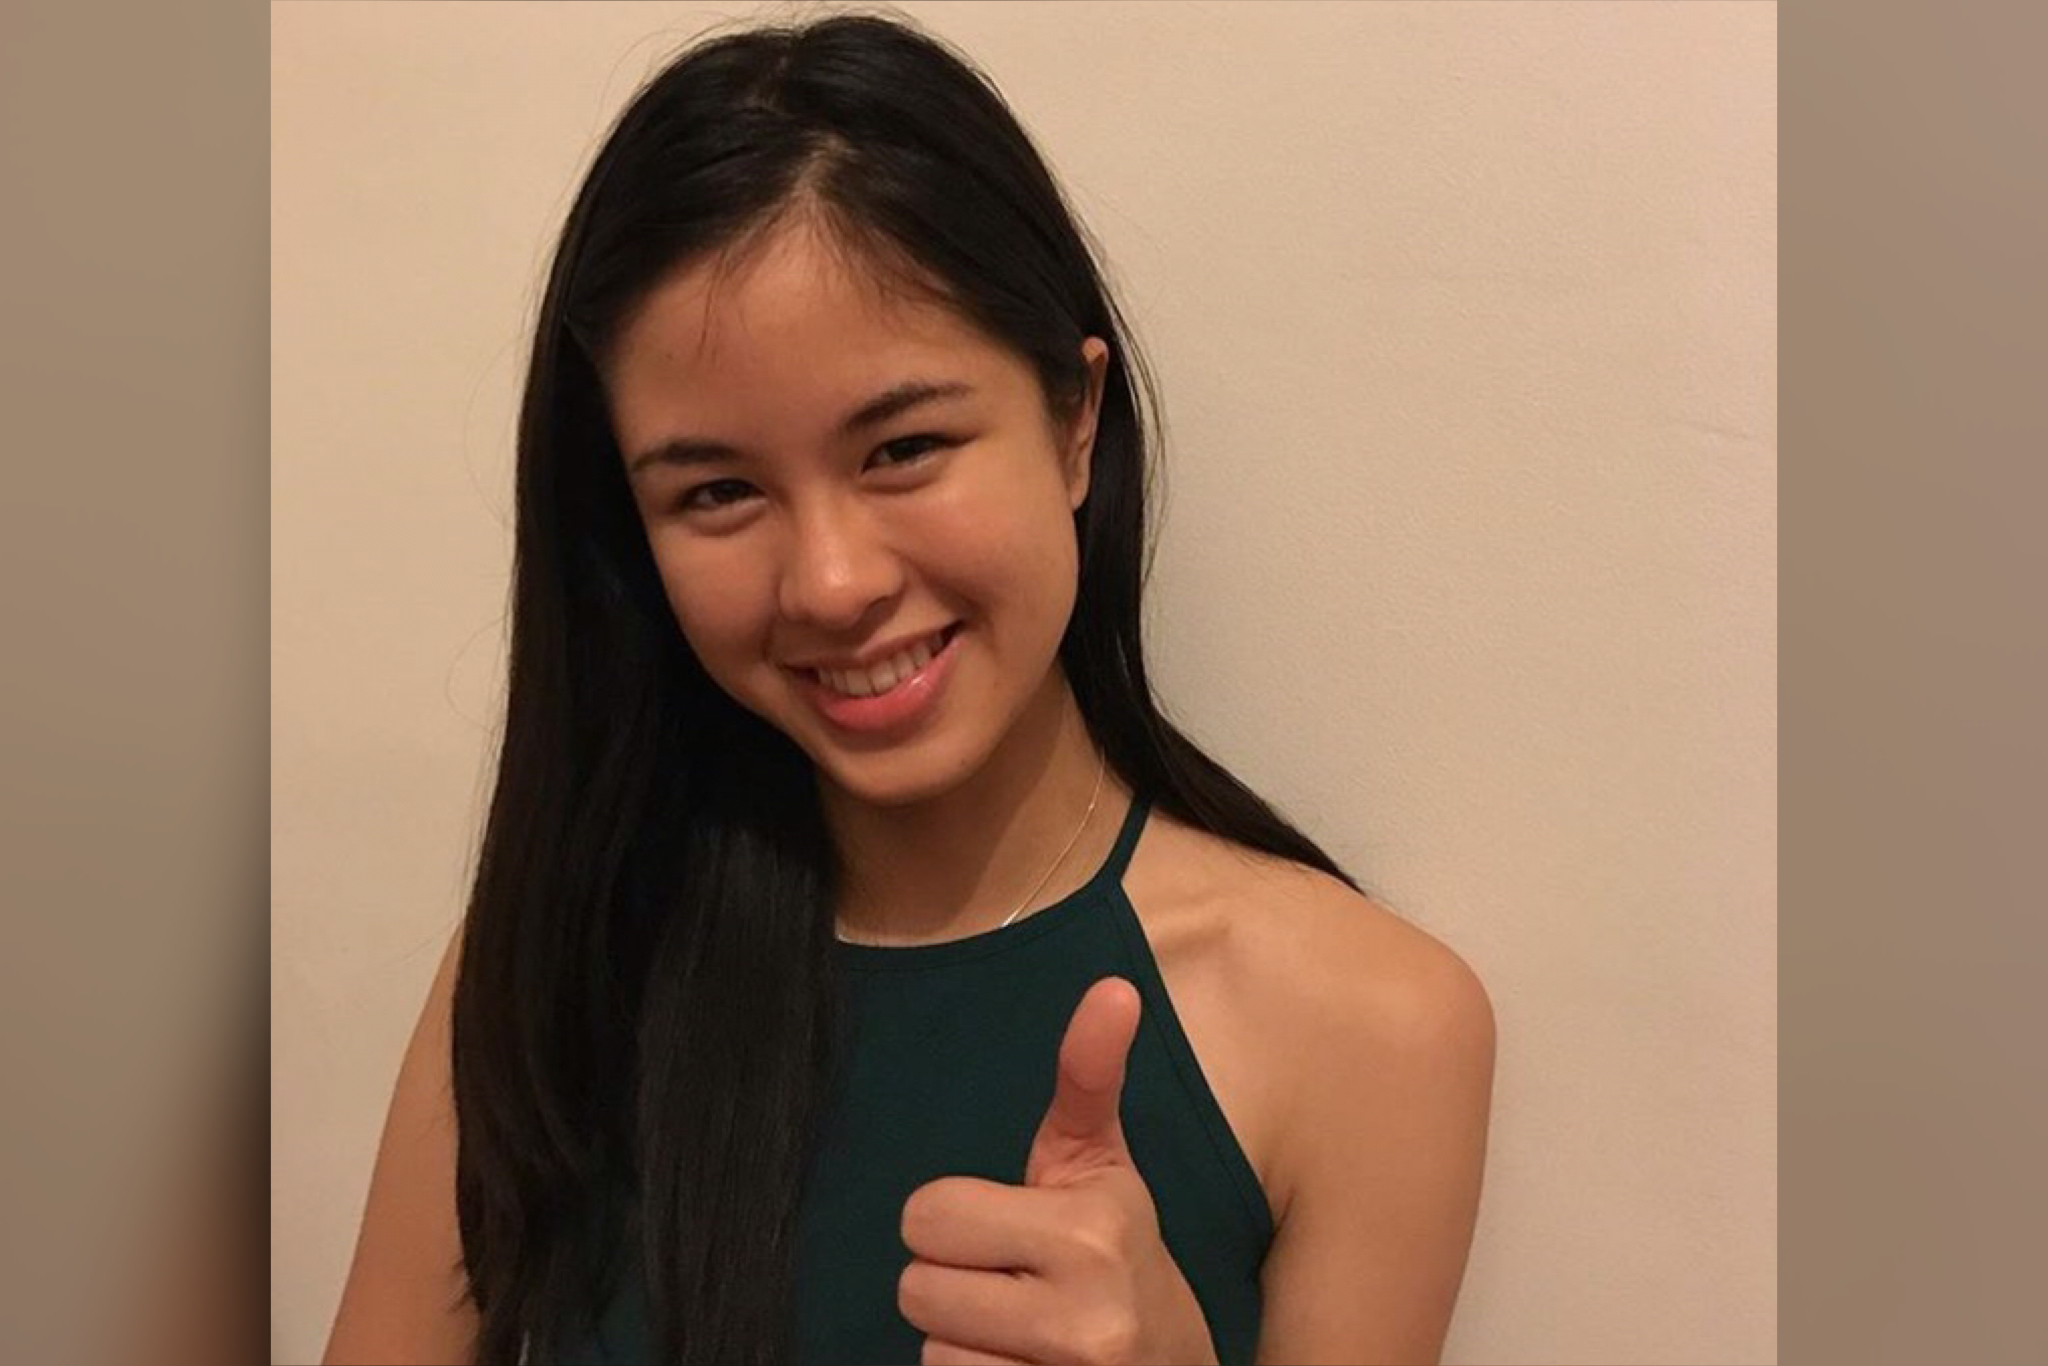 Mikee Quintos (b. 1997)